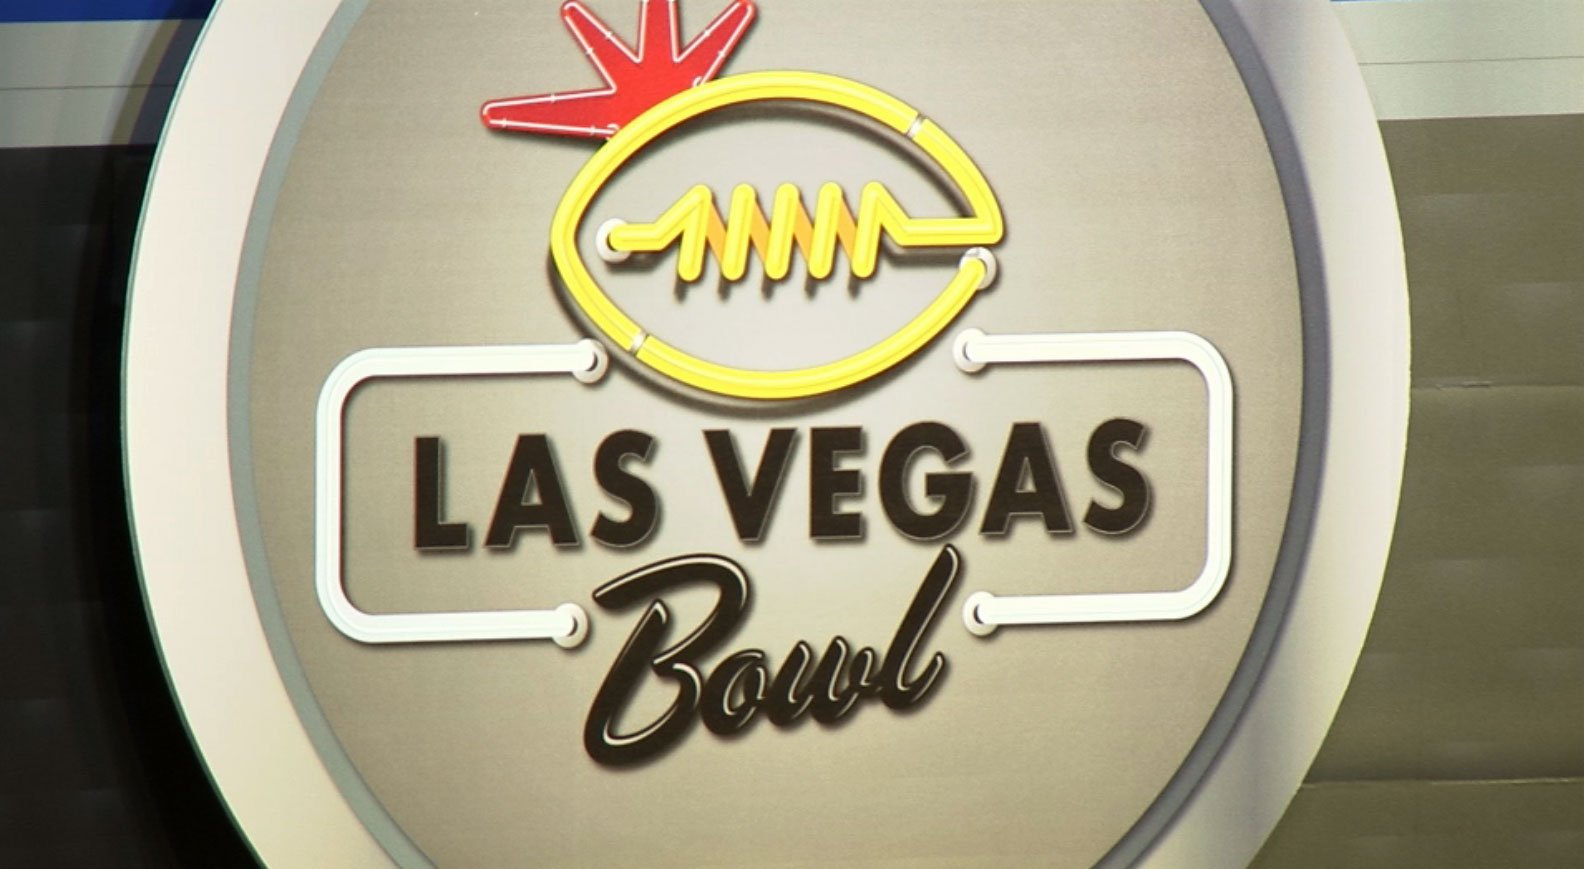 The logo for the Las Vegas Bowl is shown in an undated image.